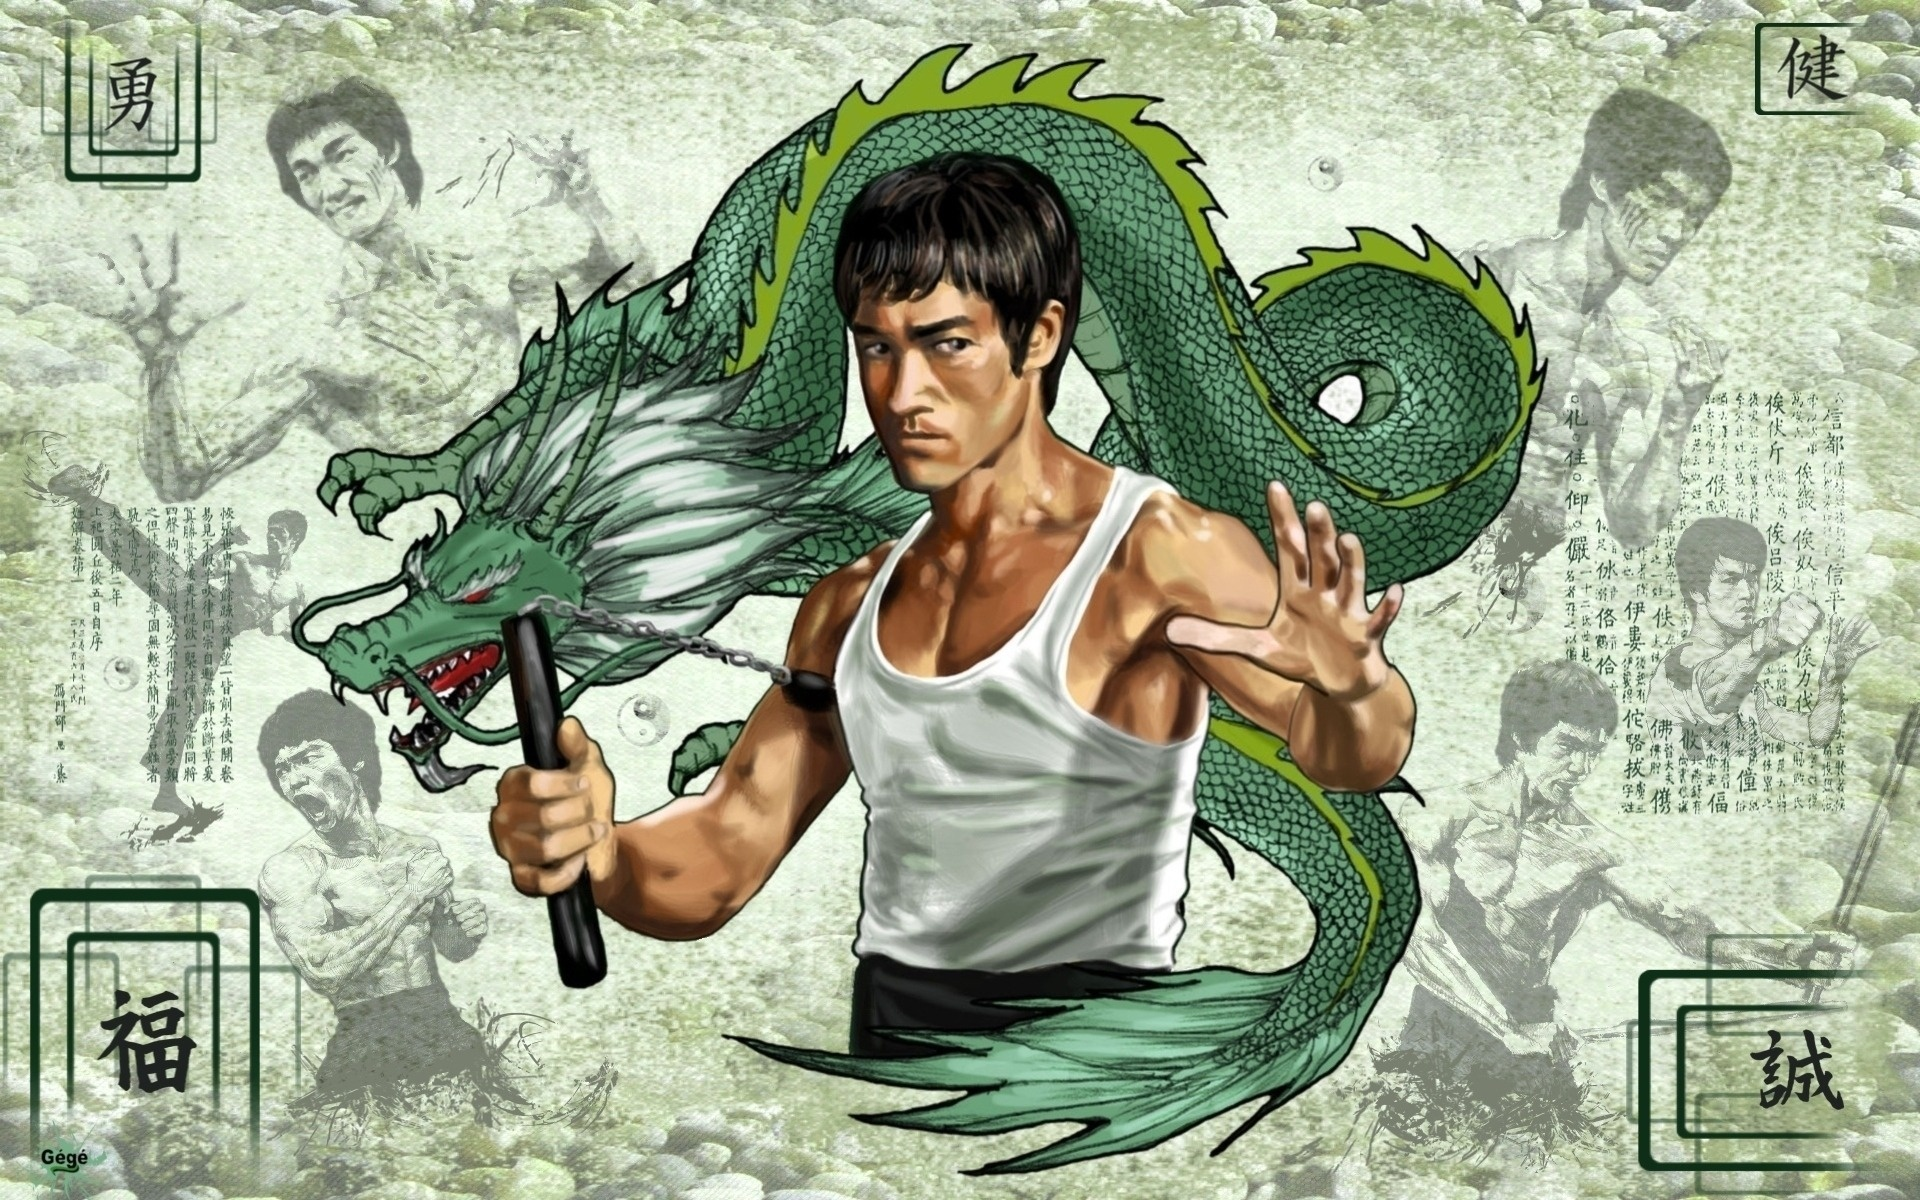 Bruce Lee Wallpapers HD green dragon cartoon